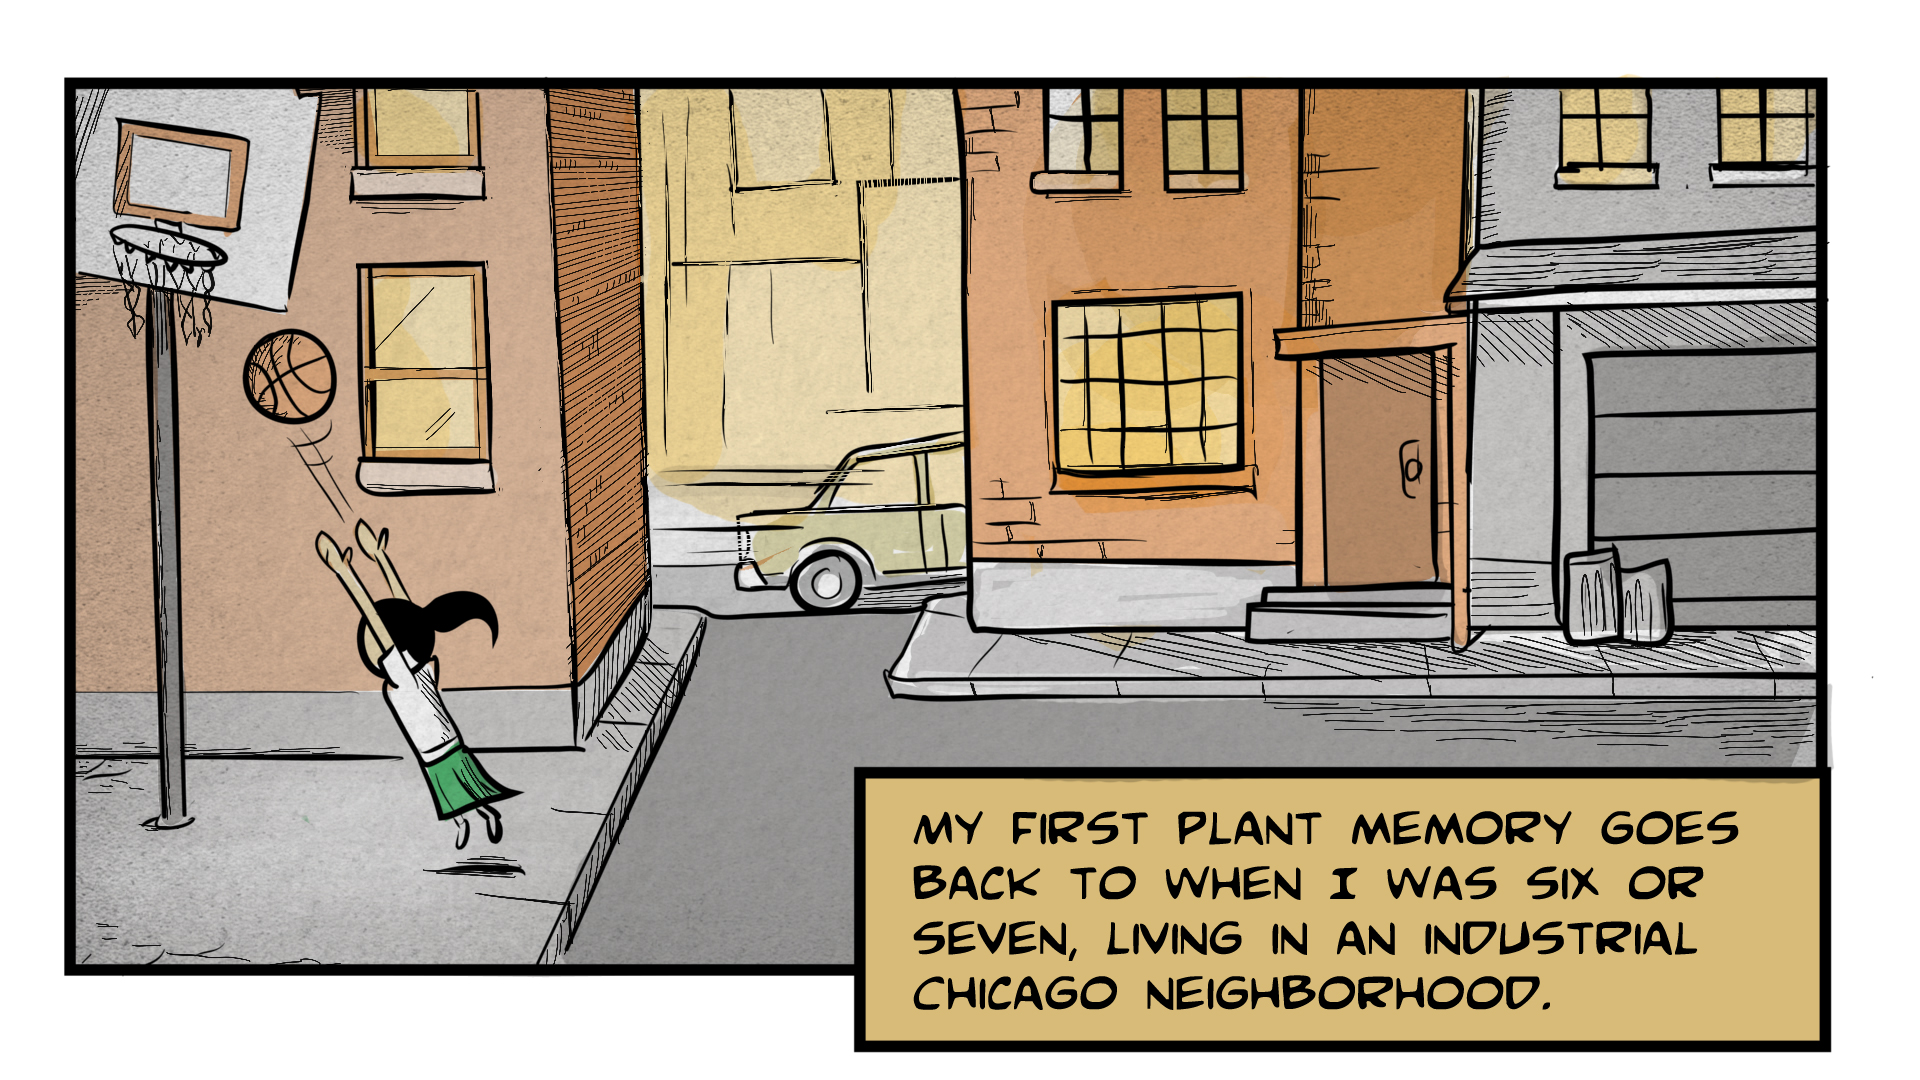 "Dina, the narrator, says ""My first plant memory goes back to when I was six or seven, living in an industrial Chicago neighborhood."" A small girl throws a basketball toward a ragged basketball hoop. She is in an alley surrounded by tall buildings. A car passes by in the background."